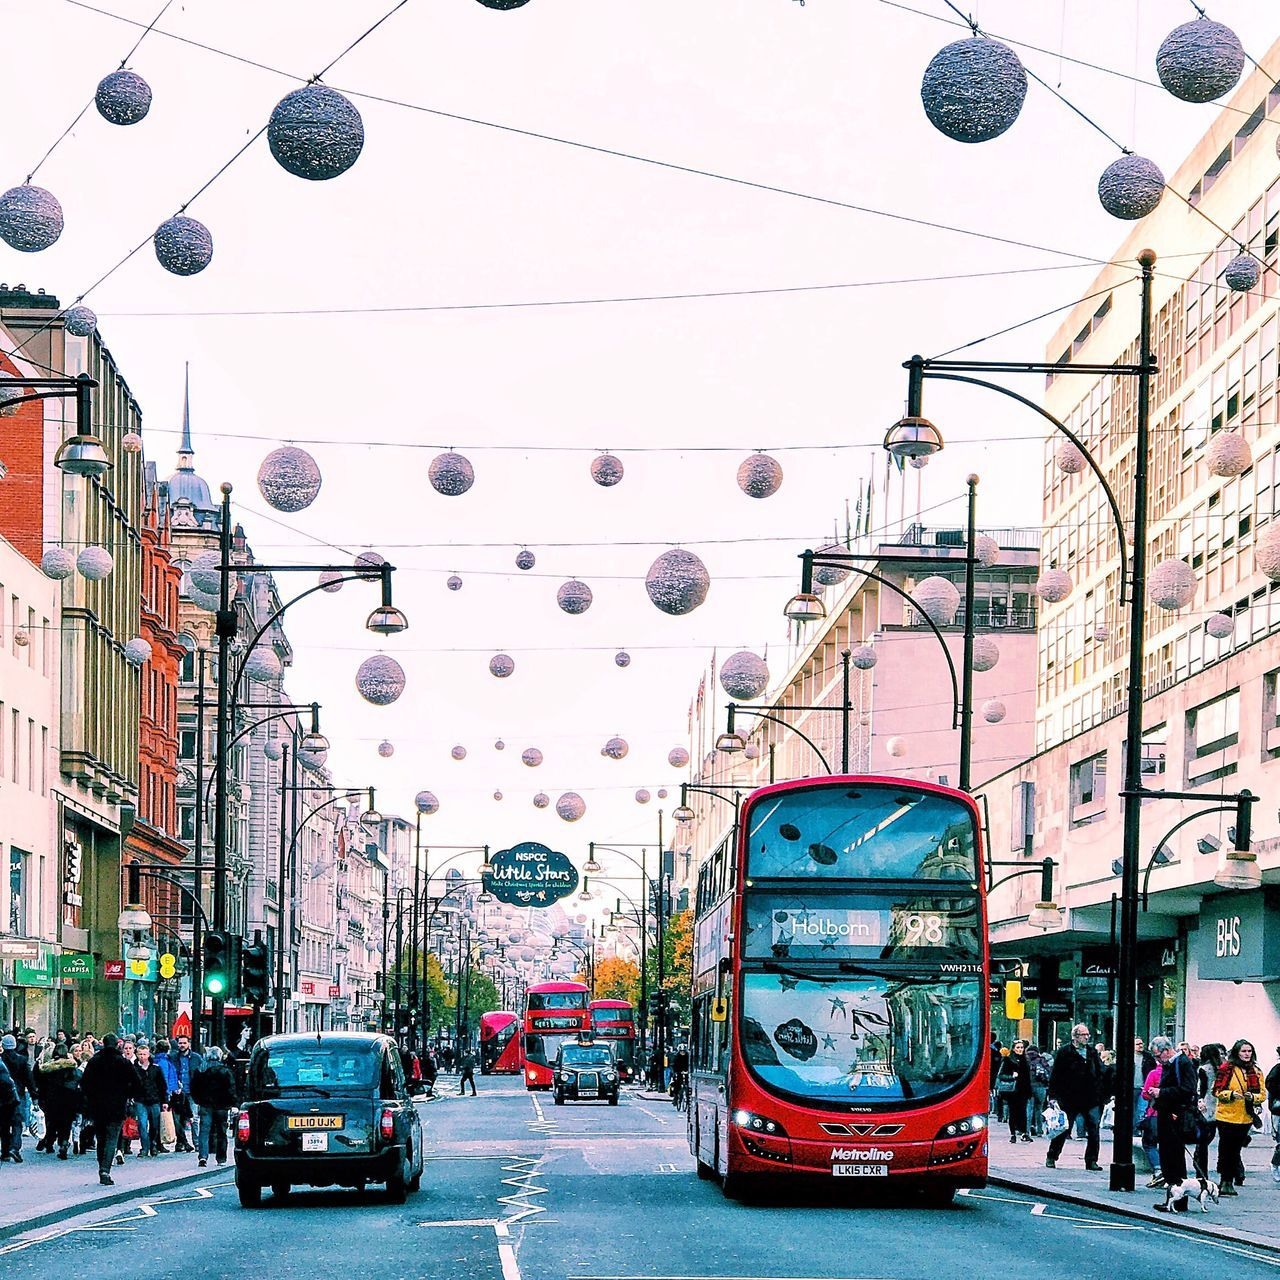 Xmas vibes in London ✨ City City Street Street Architecture Transportation City Life Building Exterior Cable Car Hanging Travel Destinations Built Structure Outdoors Public Transportation Red Light Day People Sky London Saturday Decoration EyeEm Best Shots EyeEm Gallery EyeEmBestPics Eyemphotos